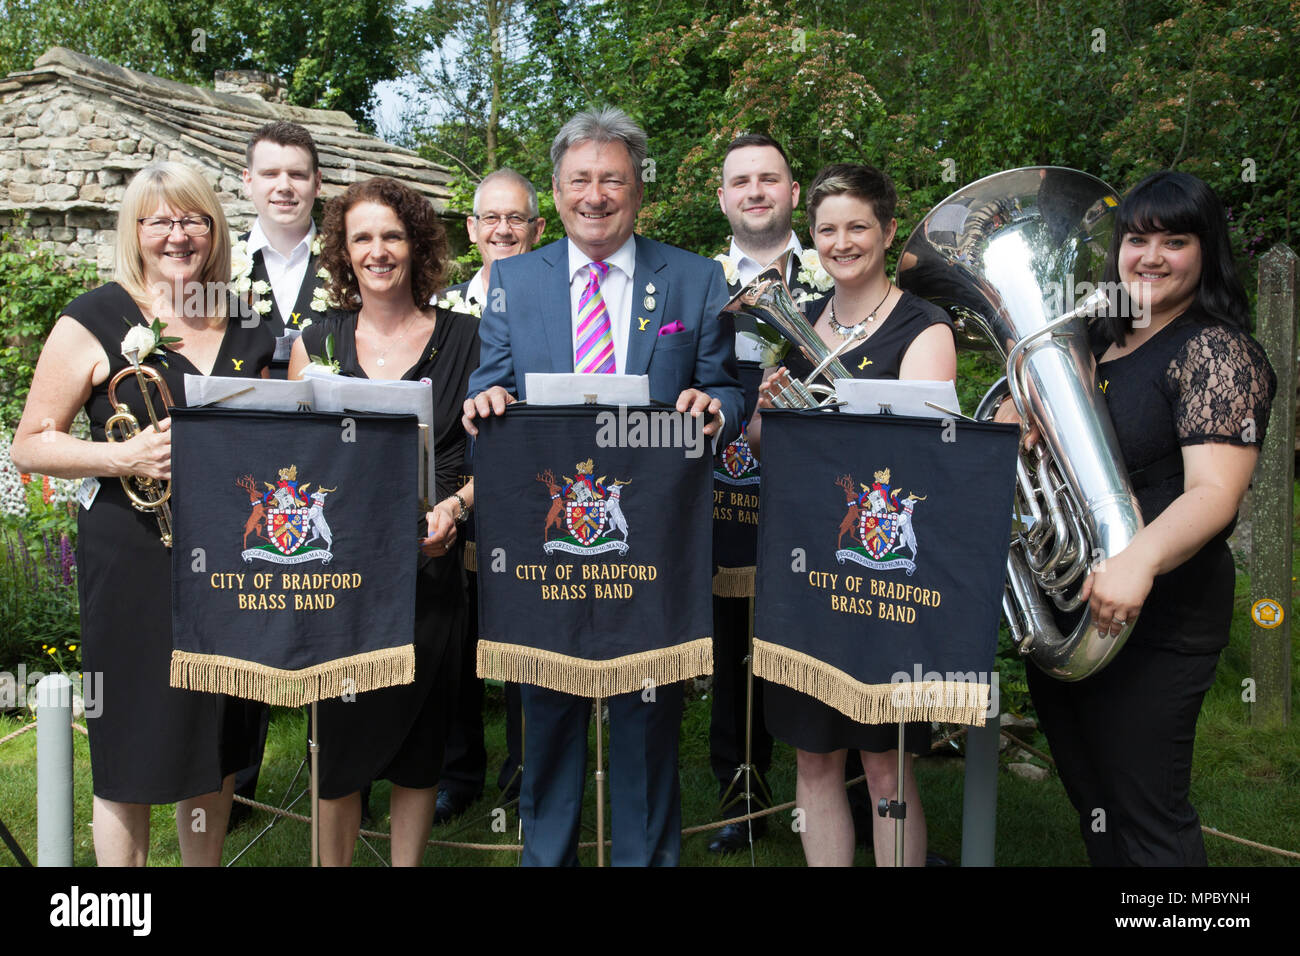 Chelsea, London, UK. 21st May, 2018. Chelsea, London, UK. 21st May 2018. Sir Alan Titchmarsh with the City of Bradford Brass Band on the Welcome to Yorkshire garden at Chelsea Flower Show 2018, designed by Mark Gregory for Landformconsultants.co.uk Credit: Jenny Lilly/Alamy Live News - Stock Image